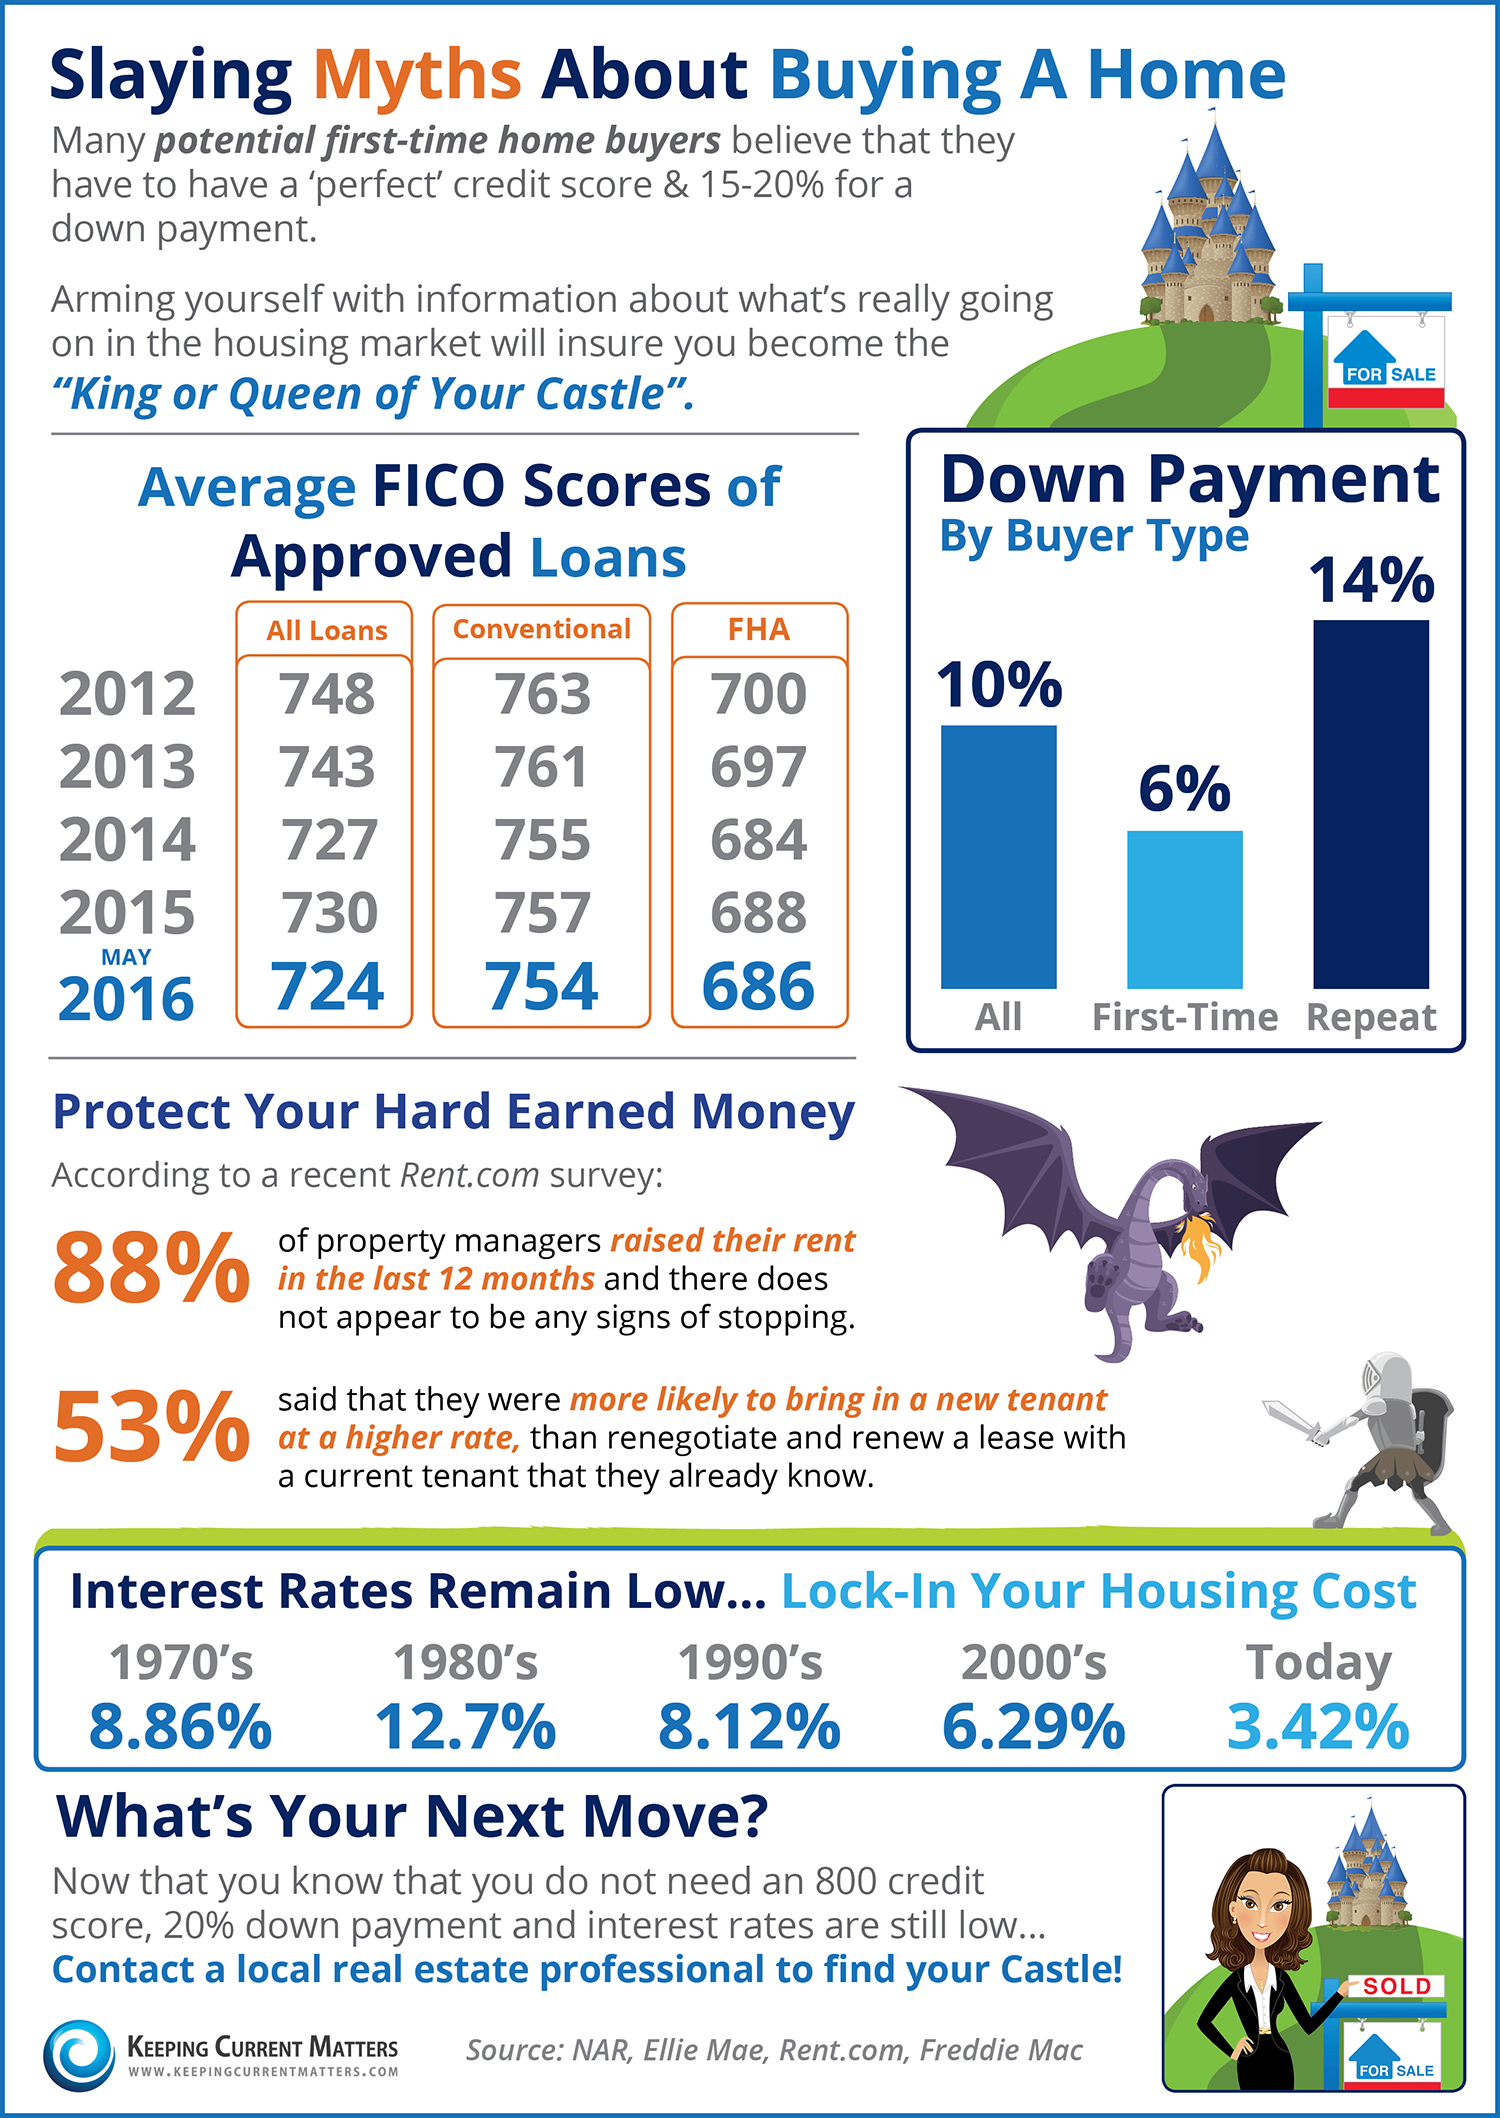 Slaying Myths About Home Buying [INFOGRAPHIC] | Keeping Current Matters